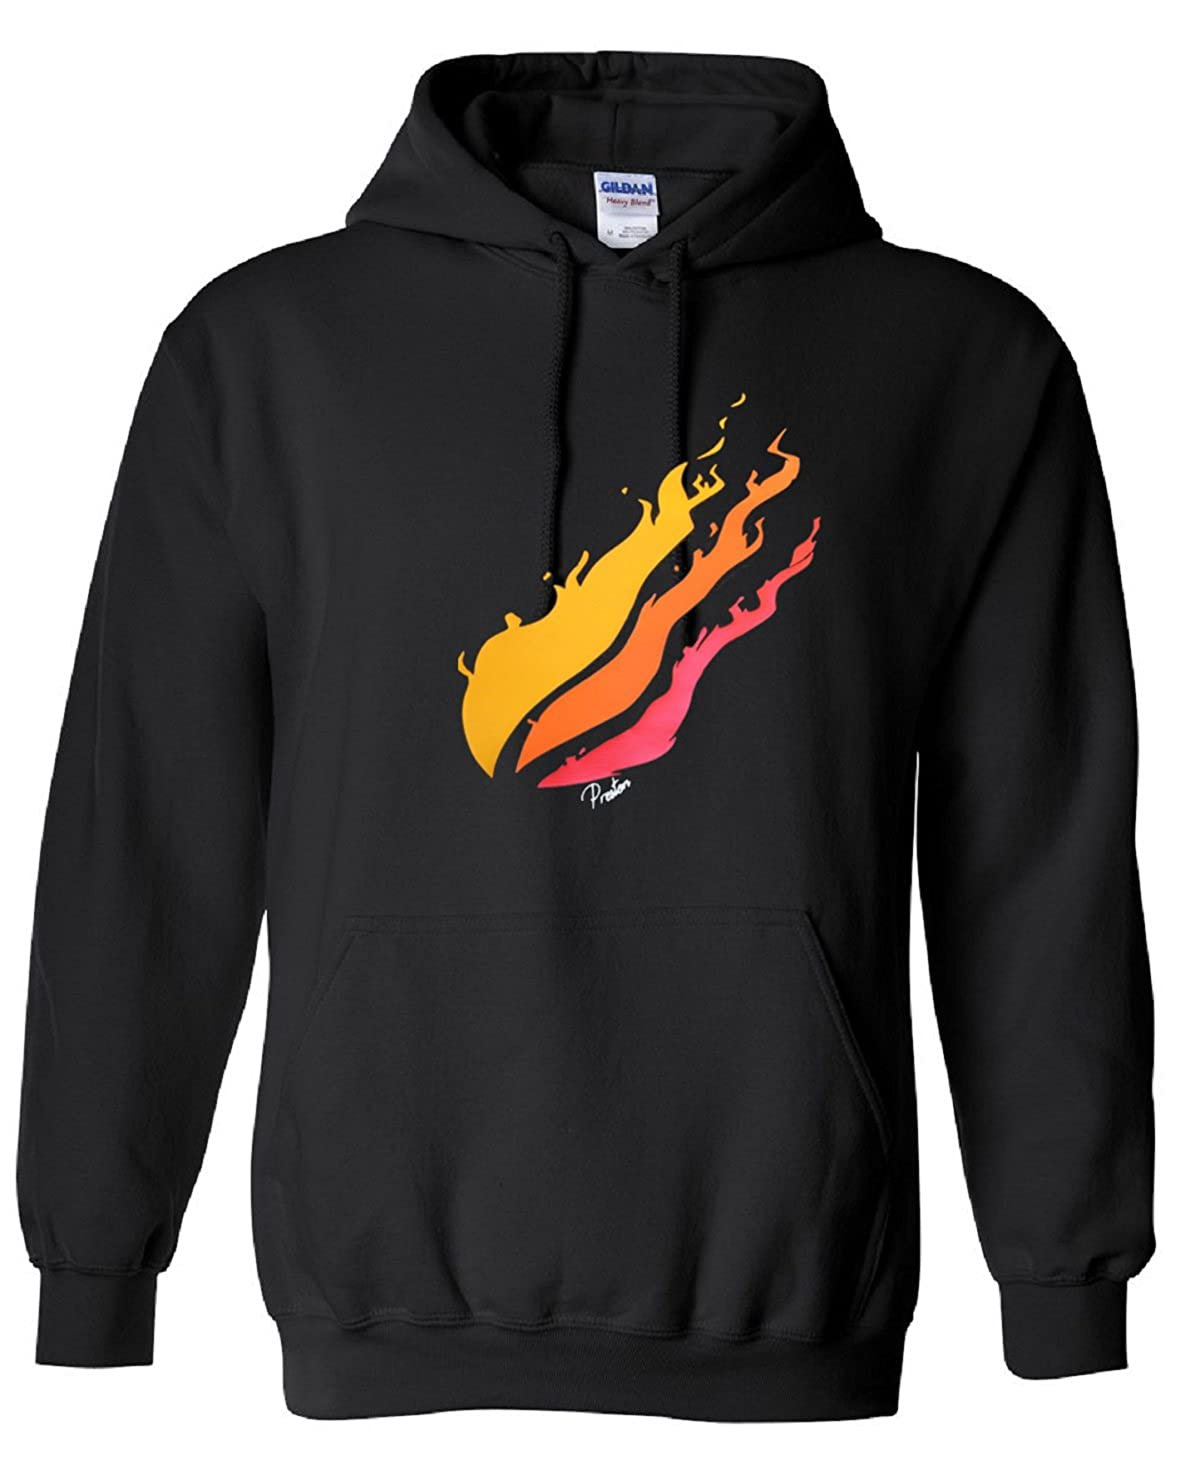 000552 PrestonPlayz Youtuber,Hoodie,80% Cotton,20% Polyester Men's, Women, Kids 20% Polyester Men's Kids (Black Years 12-13)